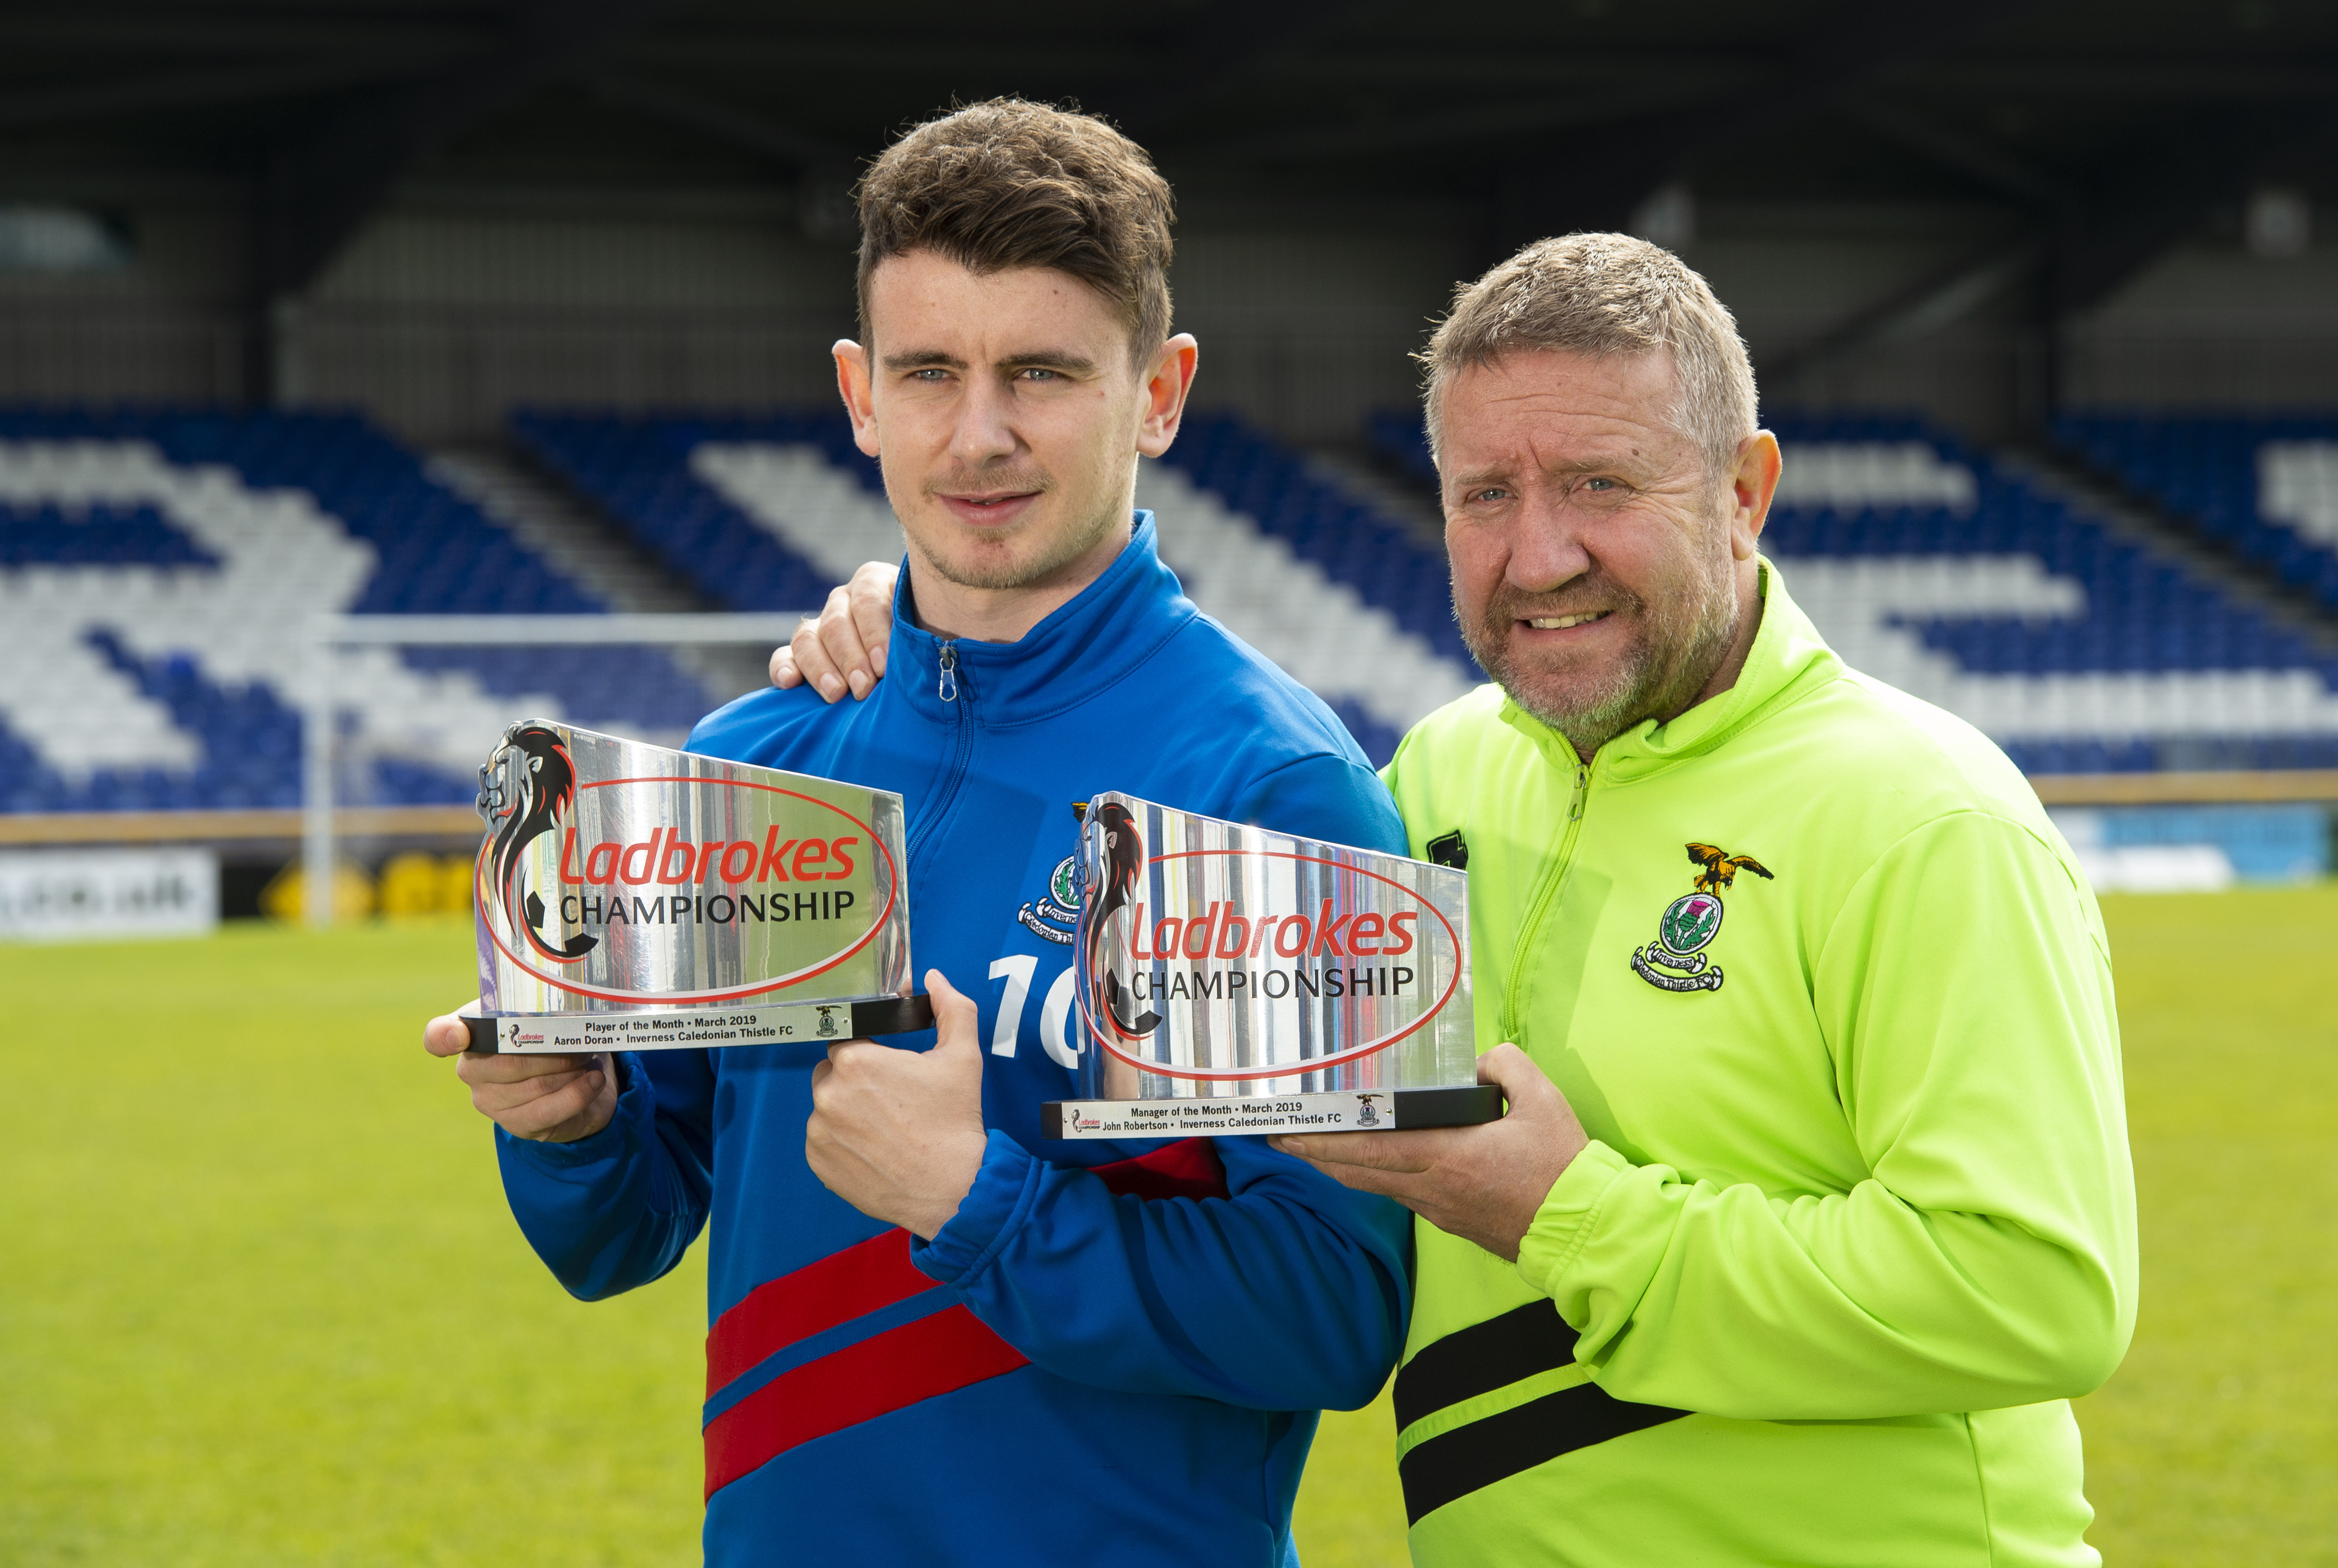 04/04/19 THE TULLOCH CALEDONIAN STADIUM - INVERNESS John Robertson and Aaron Doran win Ladbrokes Championship Manager and Player of the month awards for March.